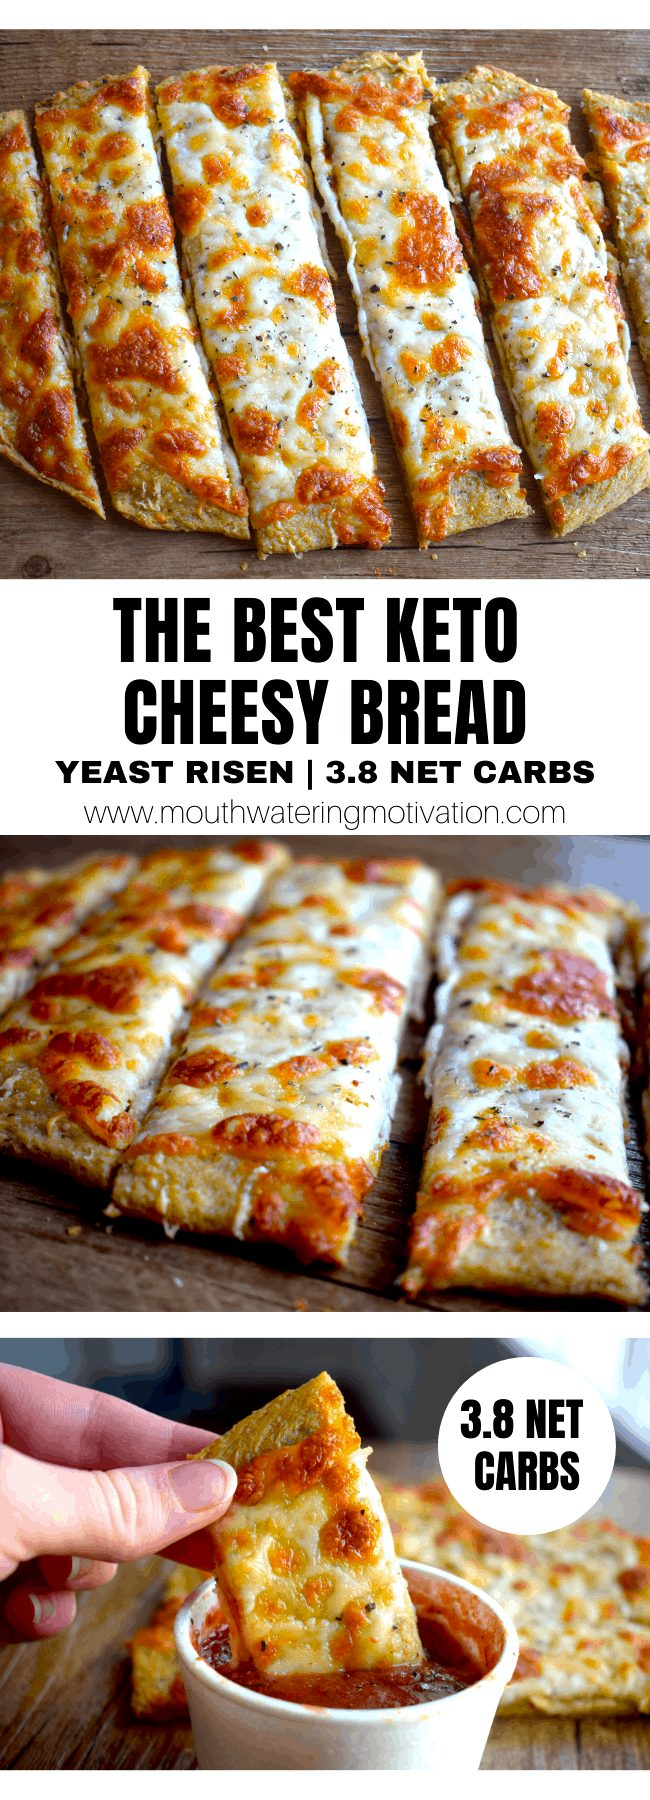 THE BEST KETO CHEESY BREAD